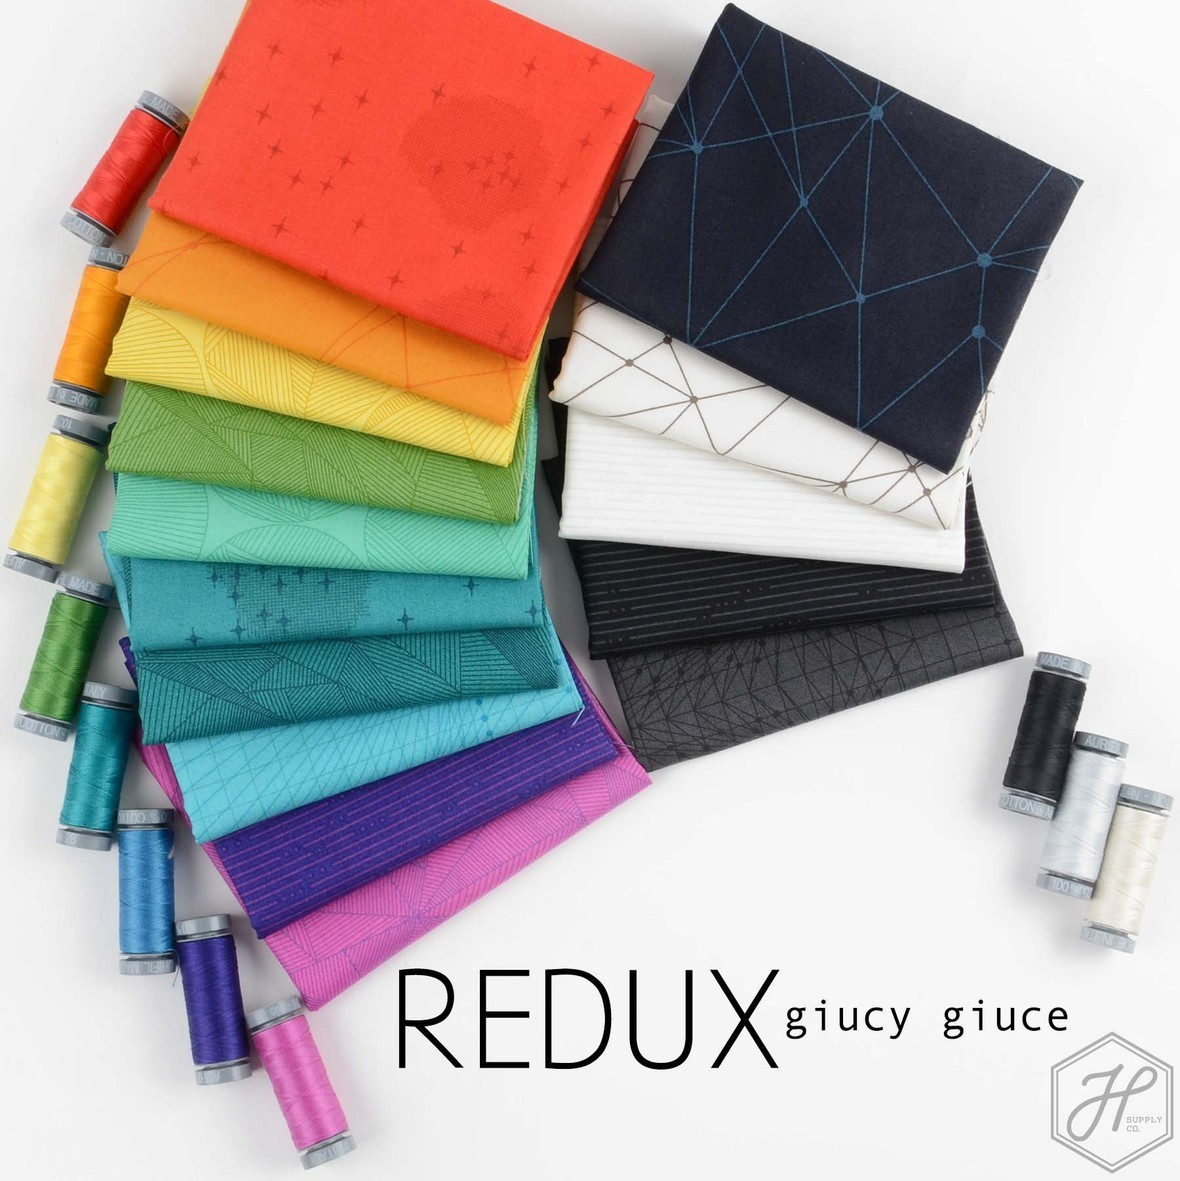 Redux Fabric Poster Hawthorne Supply Co and Giucy Giuce